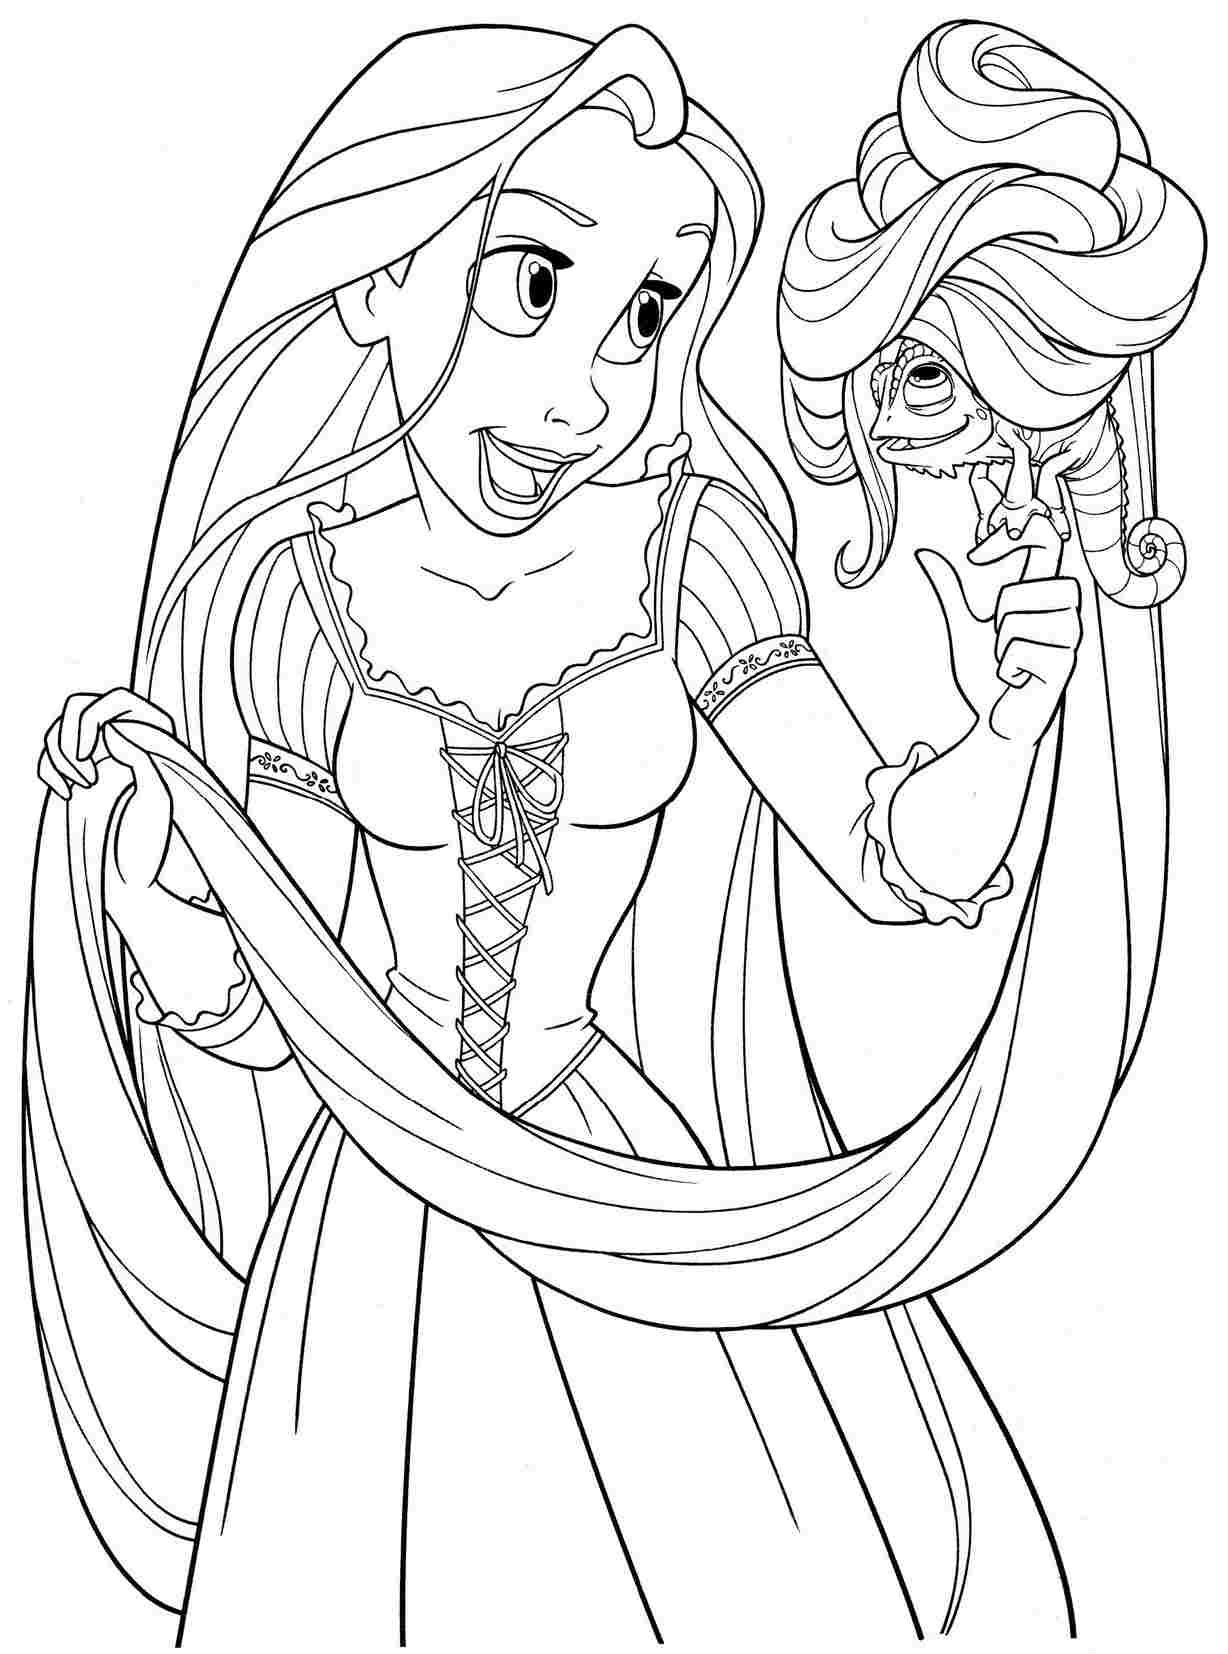 Rapunzel Cotton Candy Tangled Coloring Page